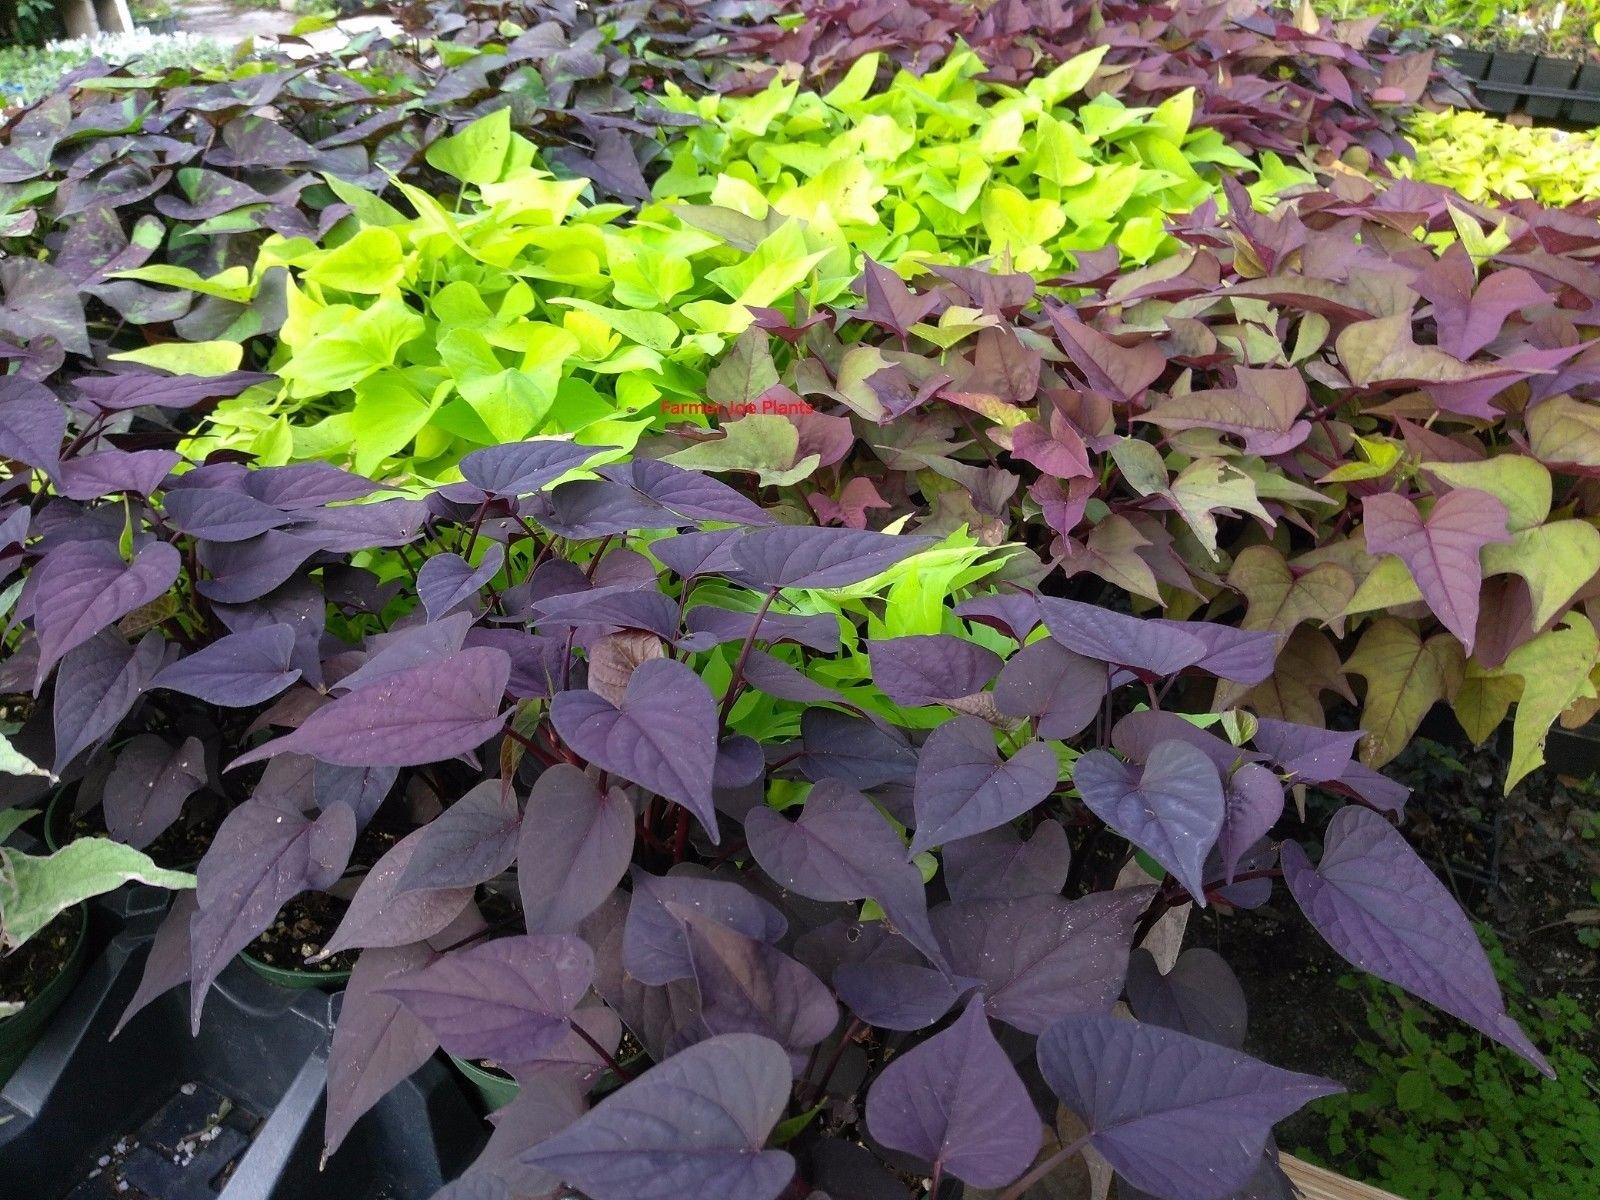 IPOMOEA SWEET POTATO VINE - MIX COLORS - 50 PLANTS - STARTERS by joescrazyplants